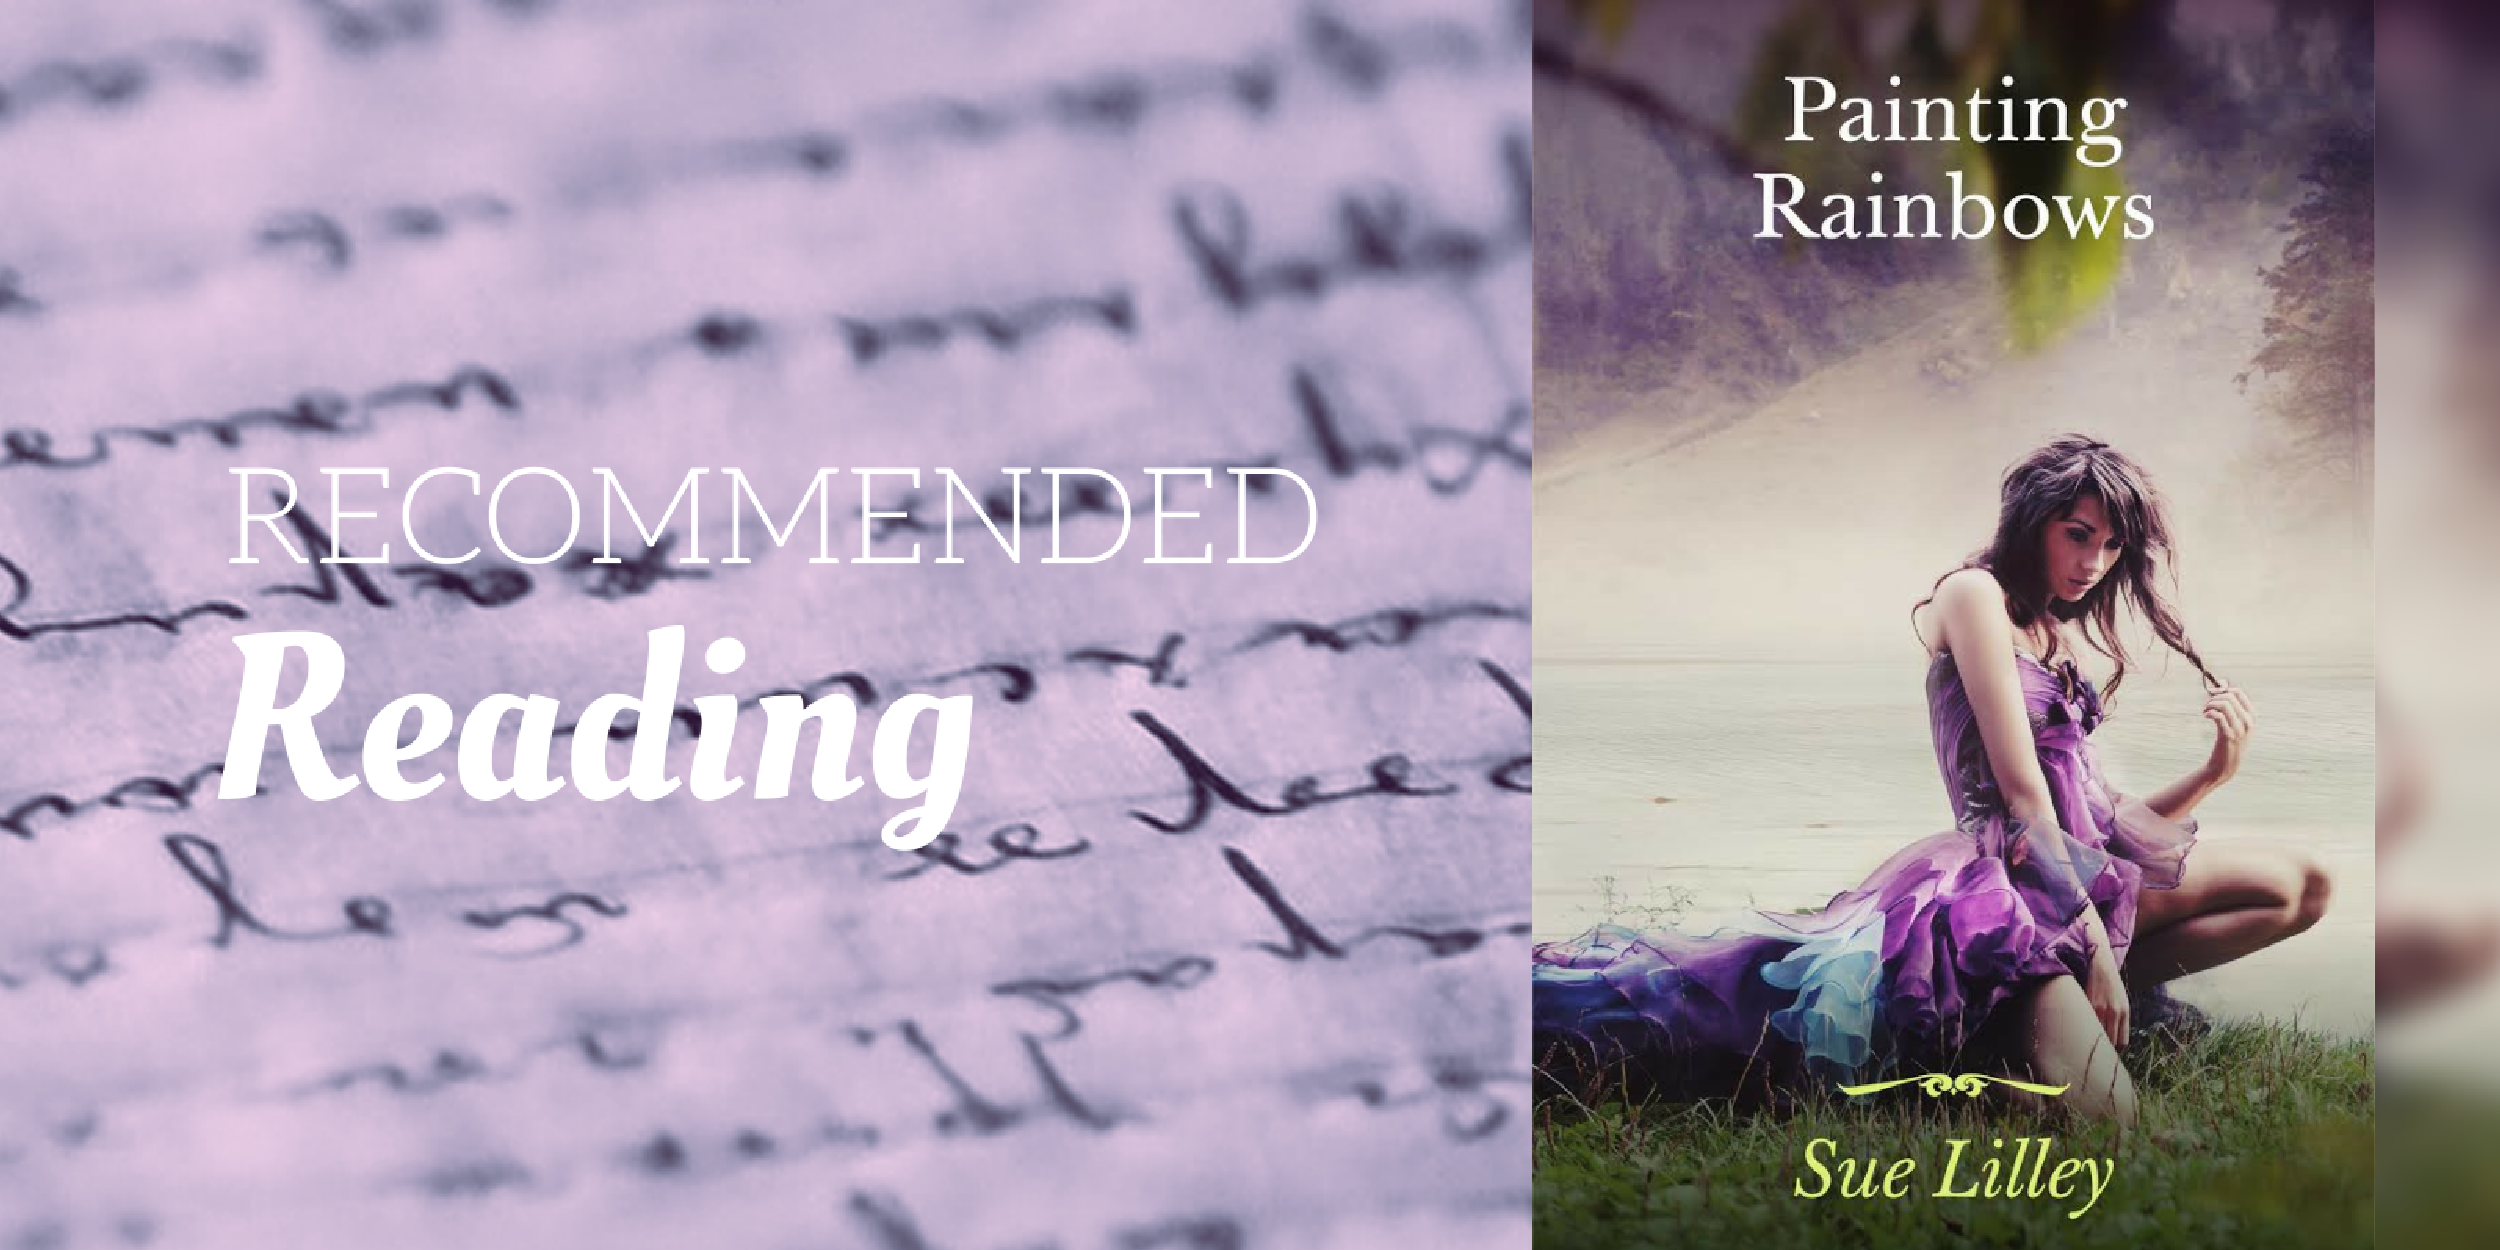 recommended-reading-painting-rainbows-by-sue-lilley